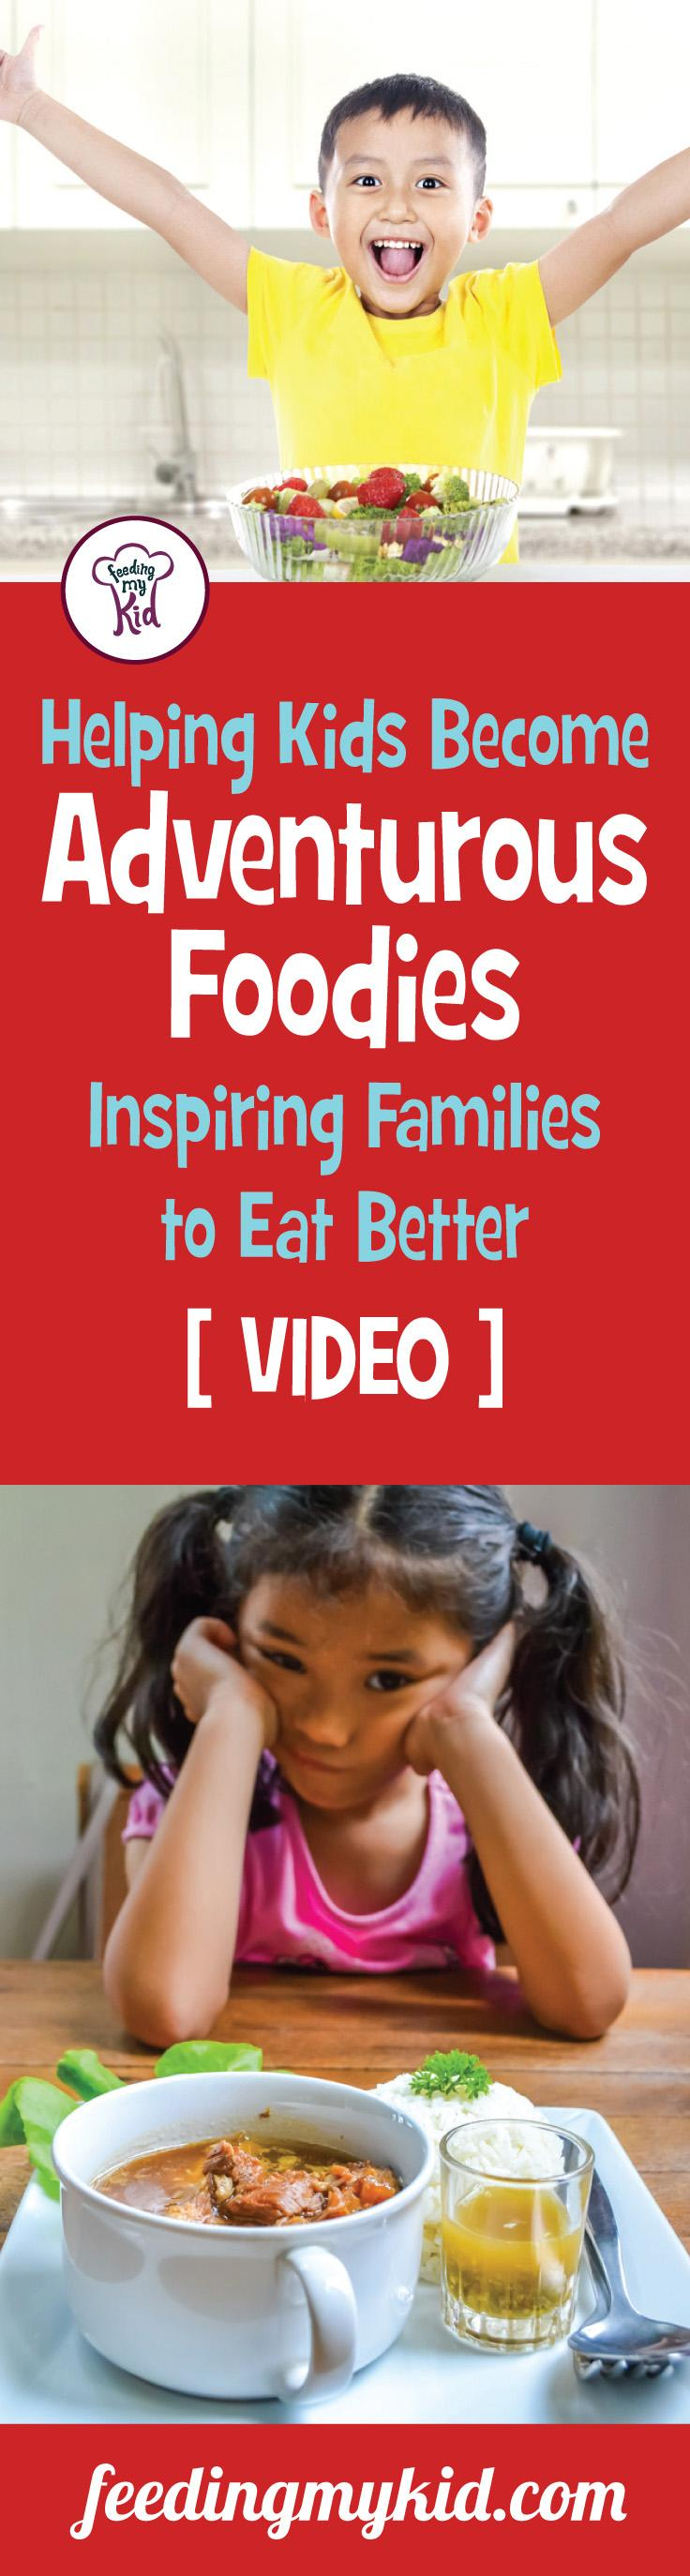 In this video, we will discuss the importance of working together and inspiring healthy eating habits for the whole family!